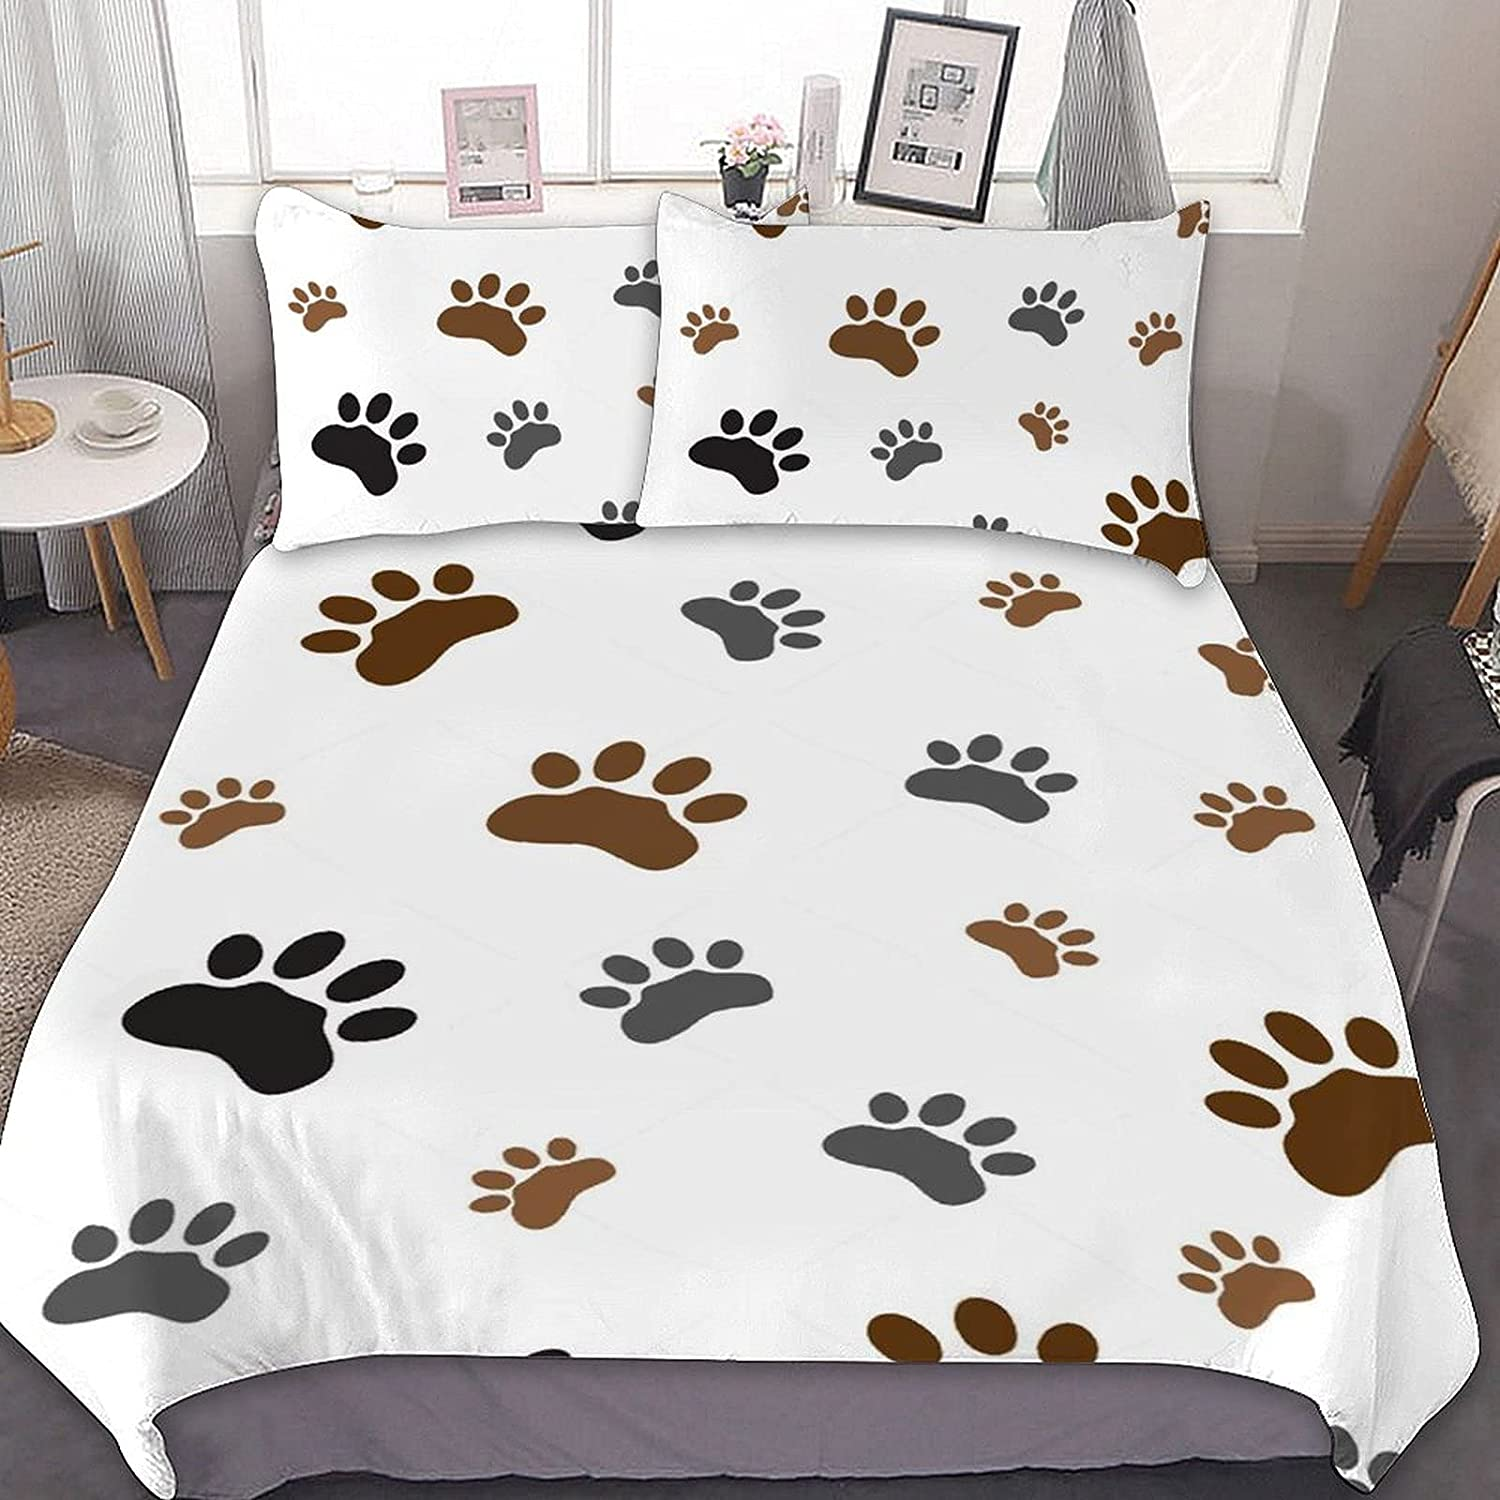 Atlanta Mall PNNUO Dog Paws Print Queen Bed Comforter King Size Set Ranking TOP18 Twin Full